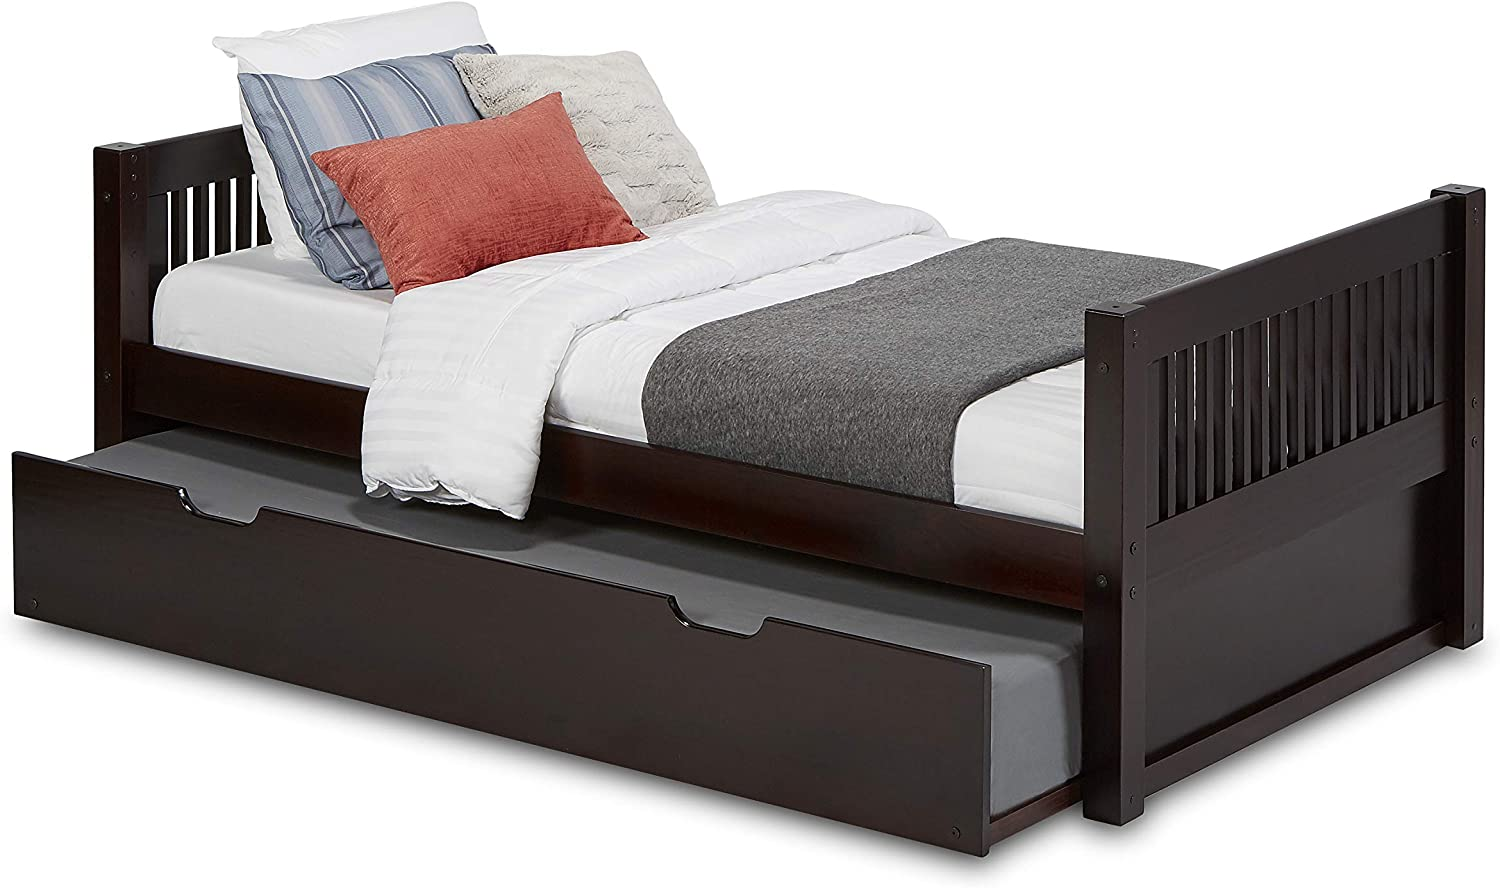 Camaflexi Mission Style Solid Wood Platform Bed, Twin, Cappuccino